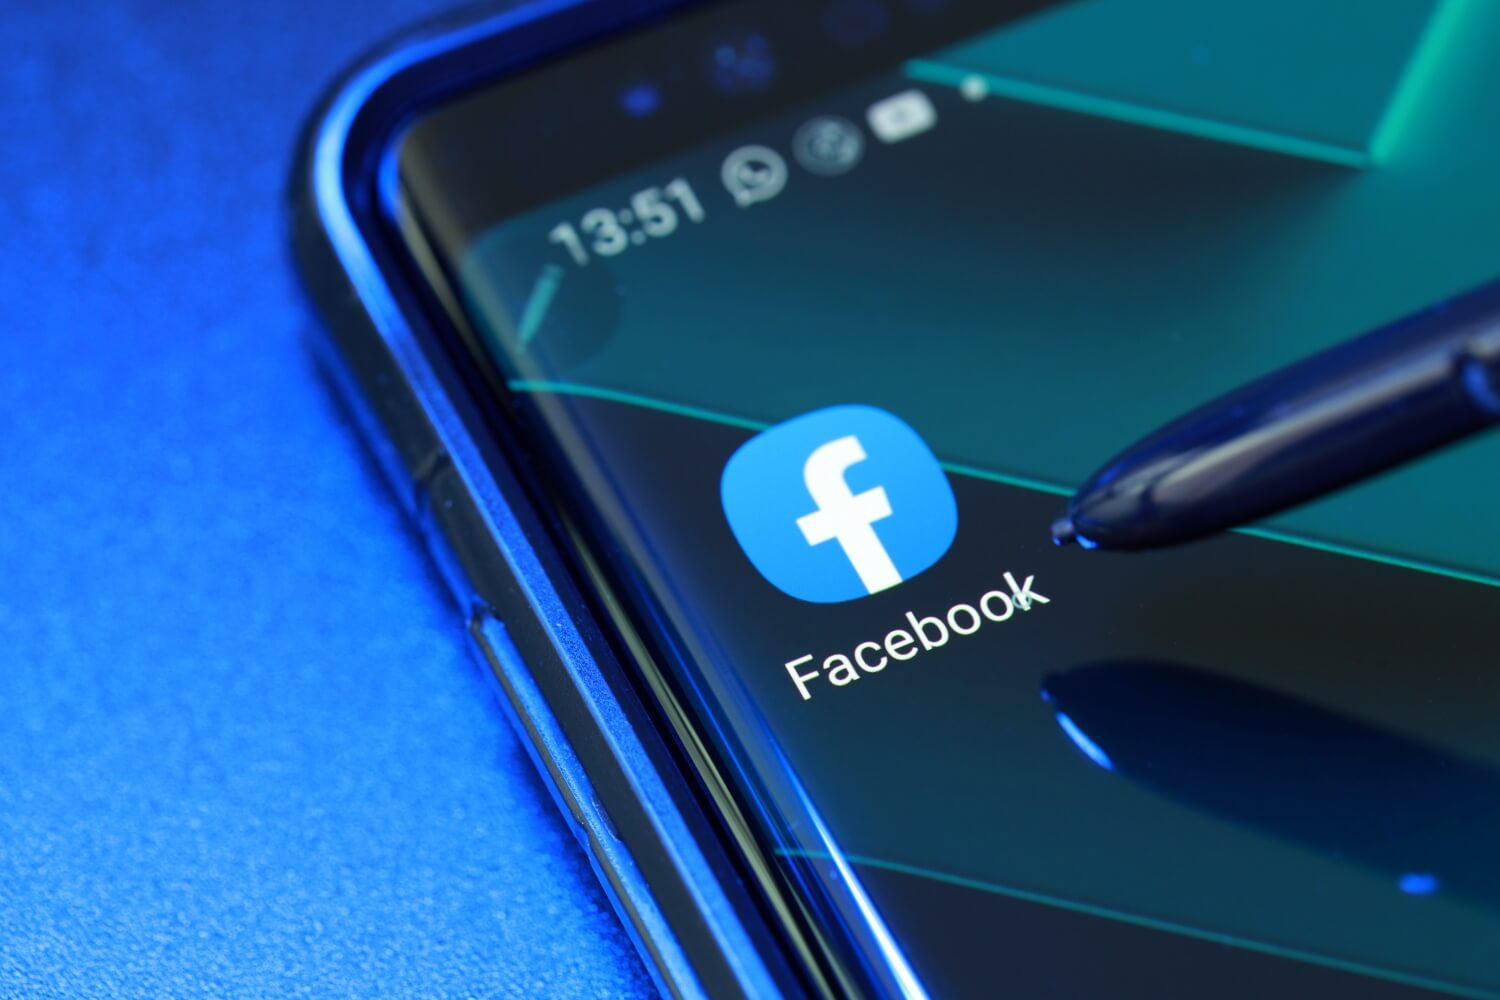 Facebook is introducing more News Feed options, including who can comment on your posts